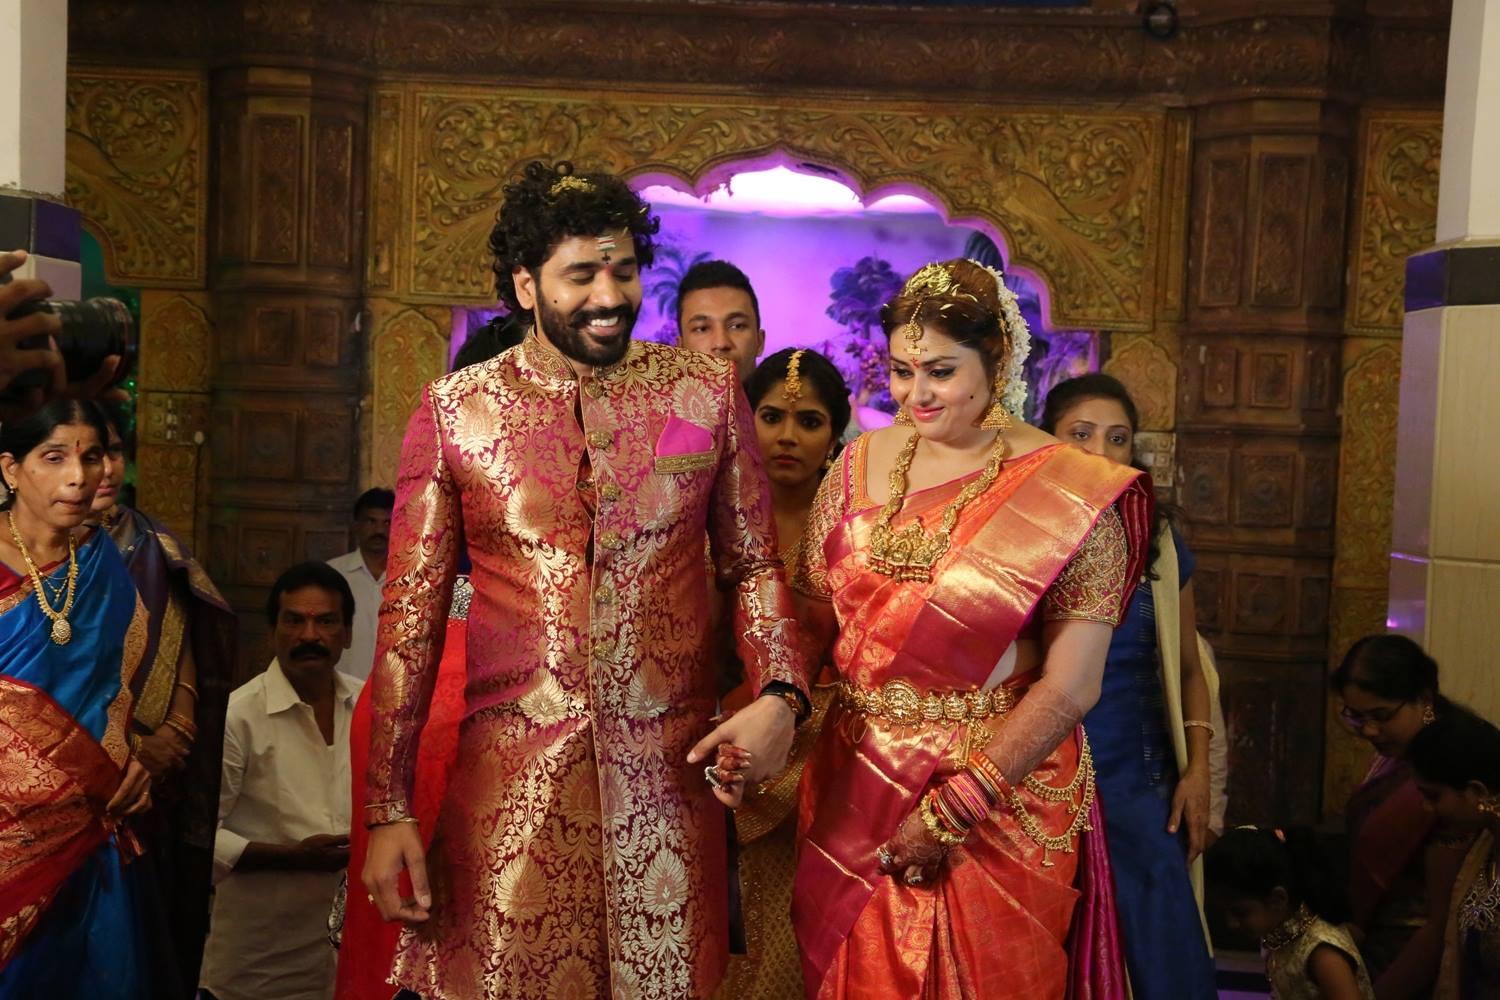 actress namita actor veer marriage photos hd images